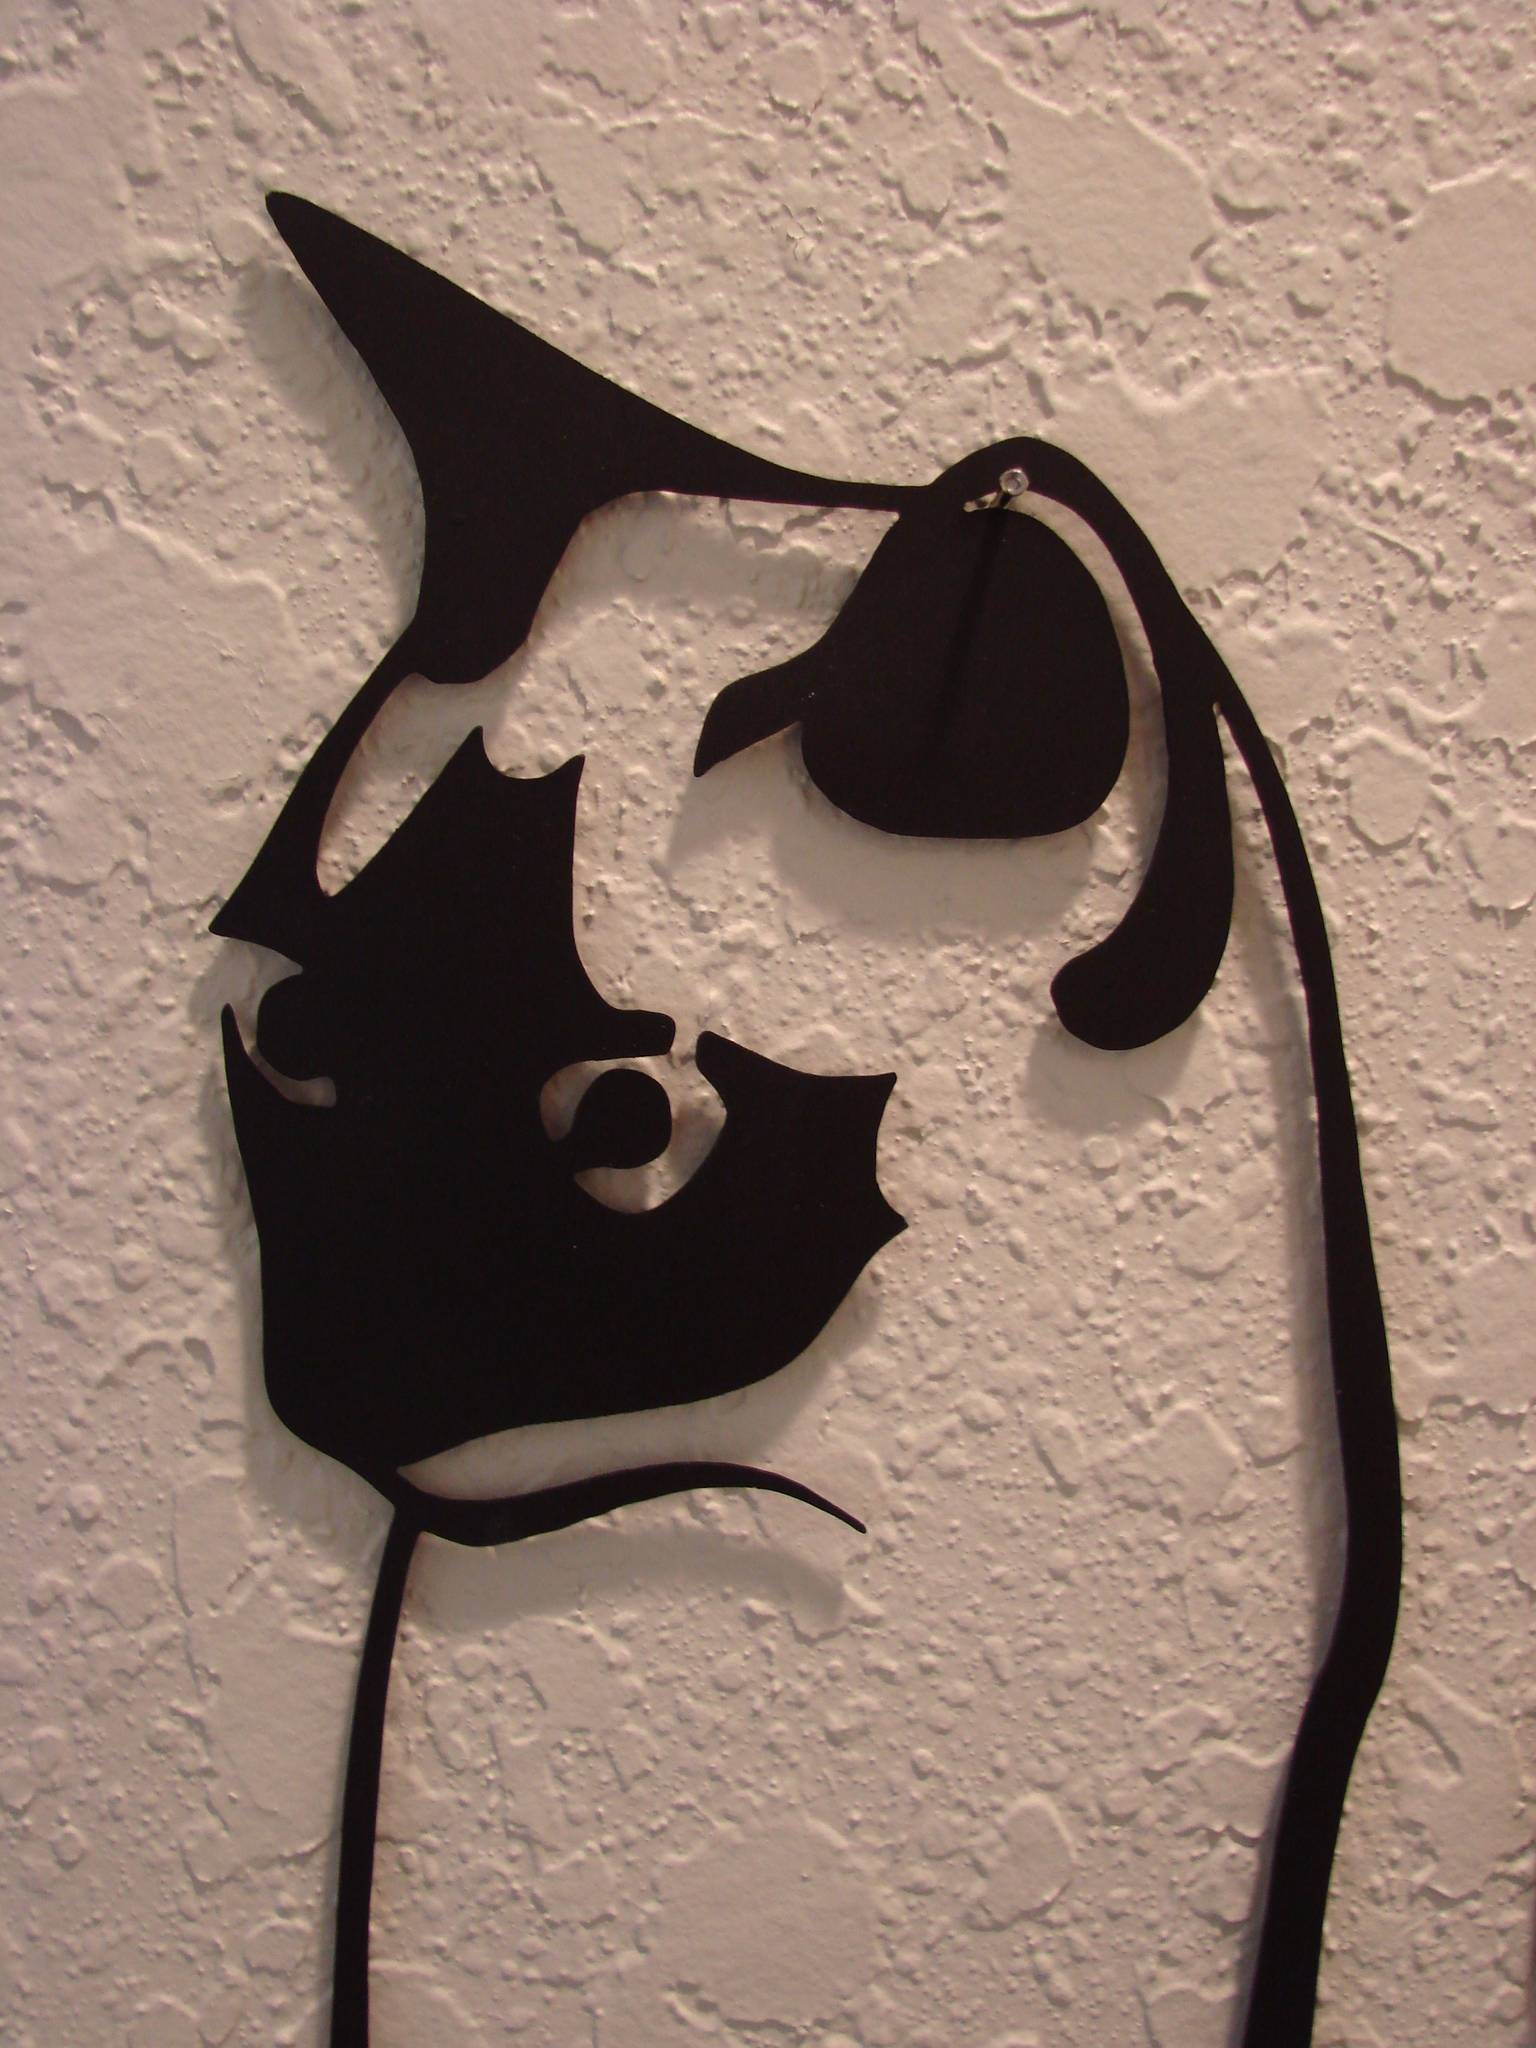 16 Gauge Plasma Cut Kitty Cat Metal Wall Art – : Throughout Latest Cat Metal Wall Art (View 2 of 20)